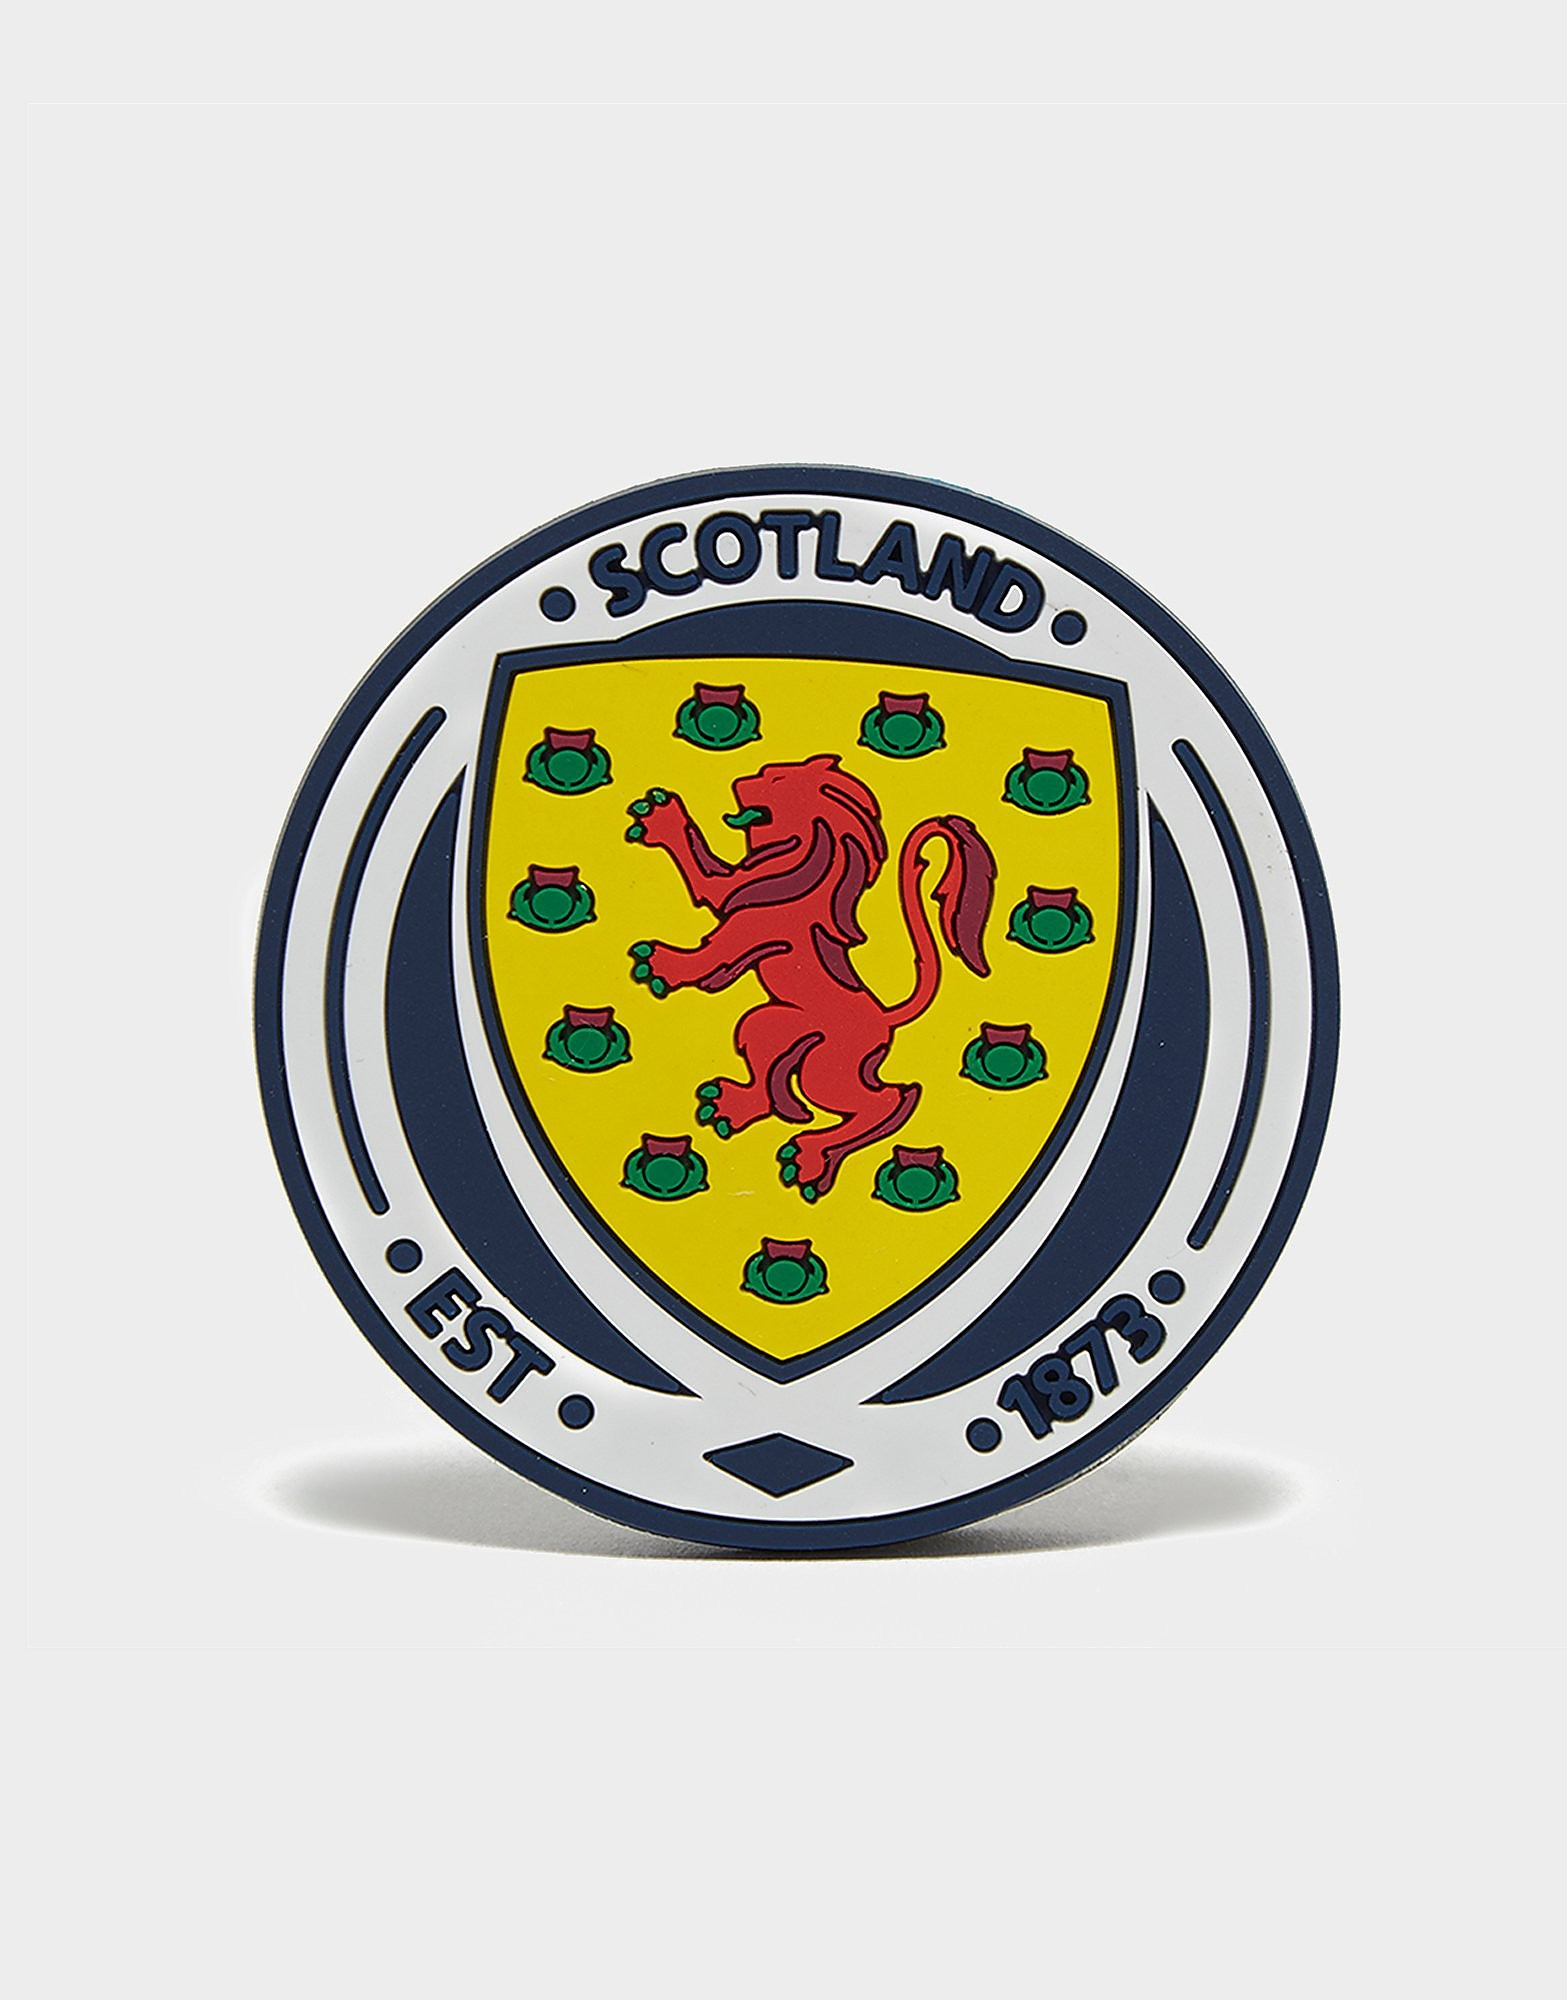 Official Team Imán del escudo del Scotland FA